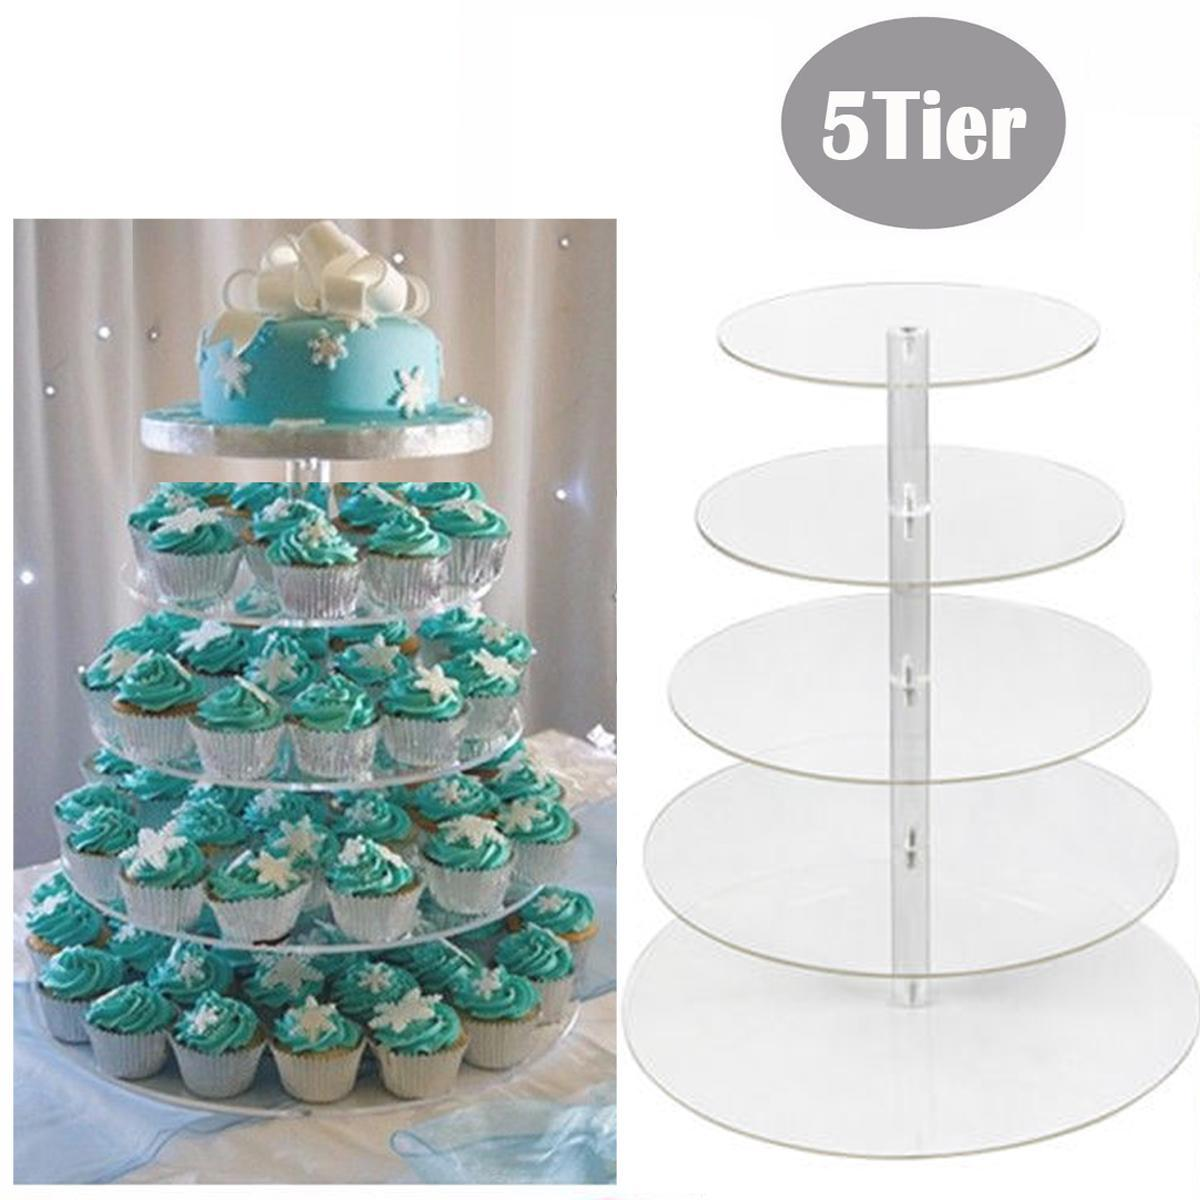 Tiered Cake Stands 5 Tiers Cake Assembly Set Towering Cake Stand Acrylic Crystal Clear Cupcake Stand  Wedding Party Display